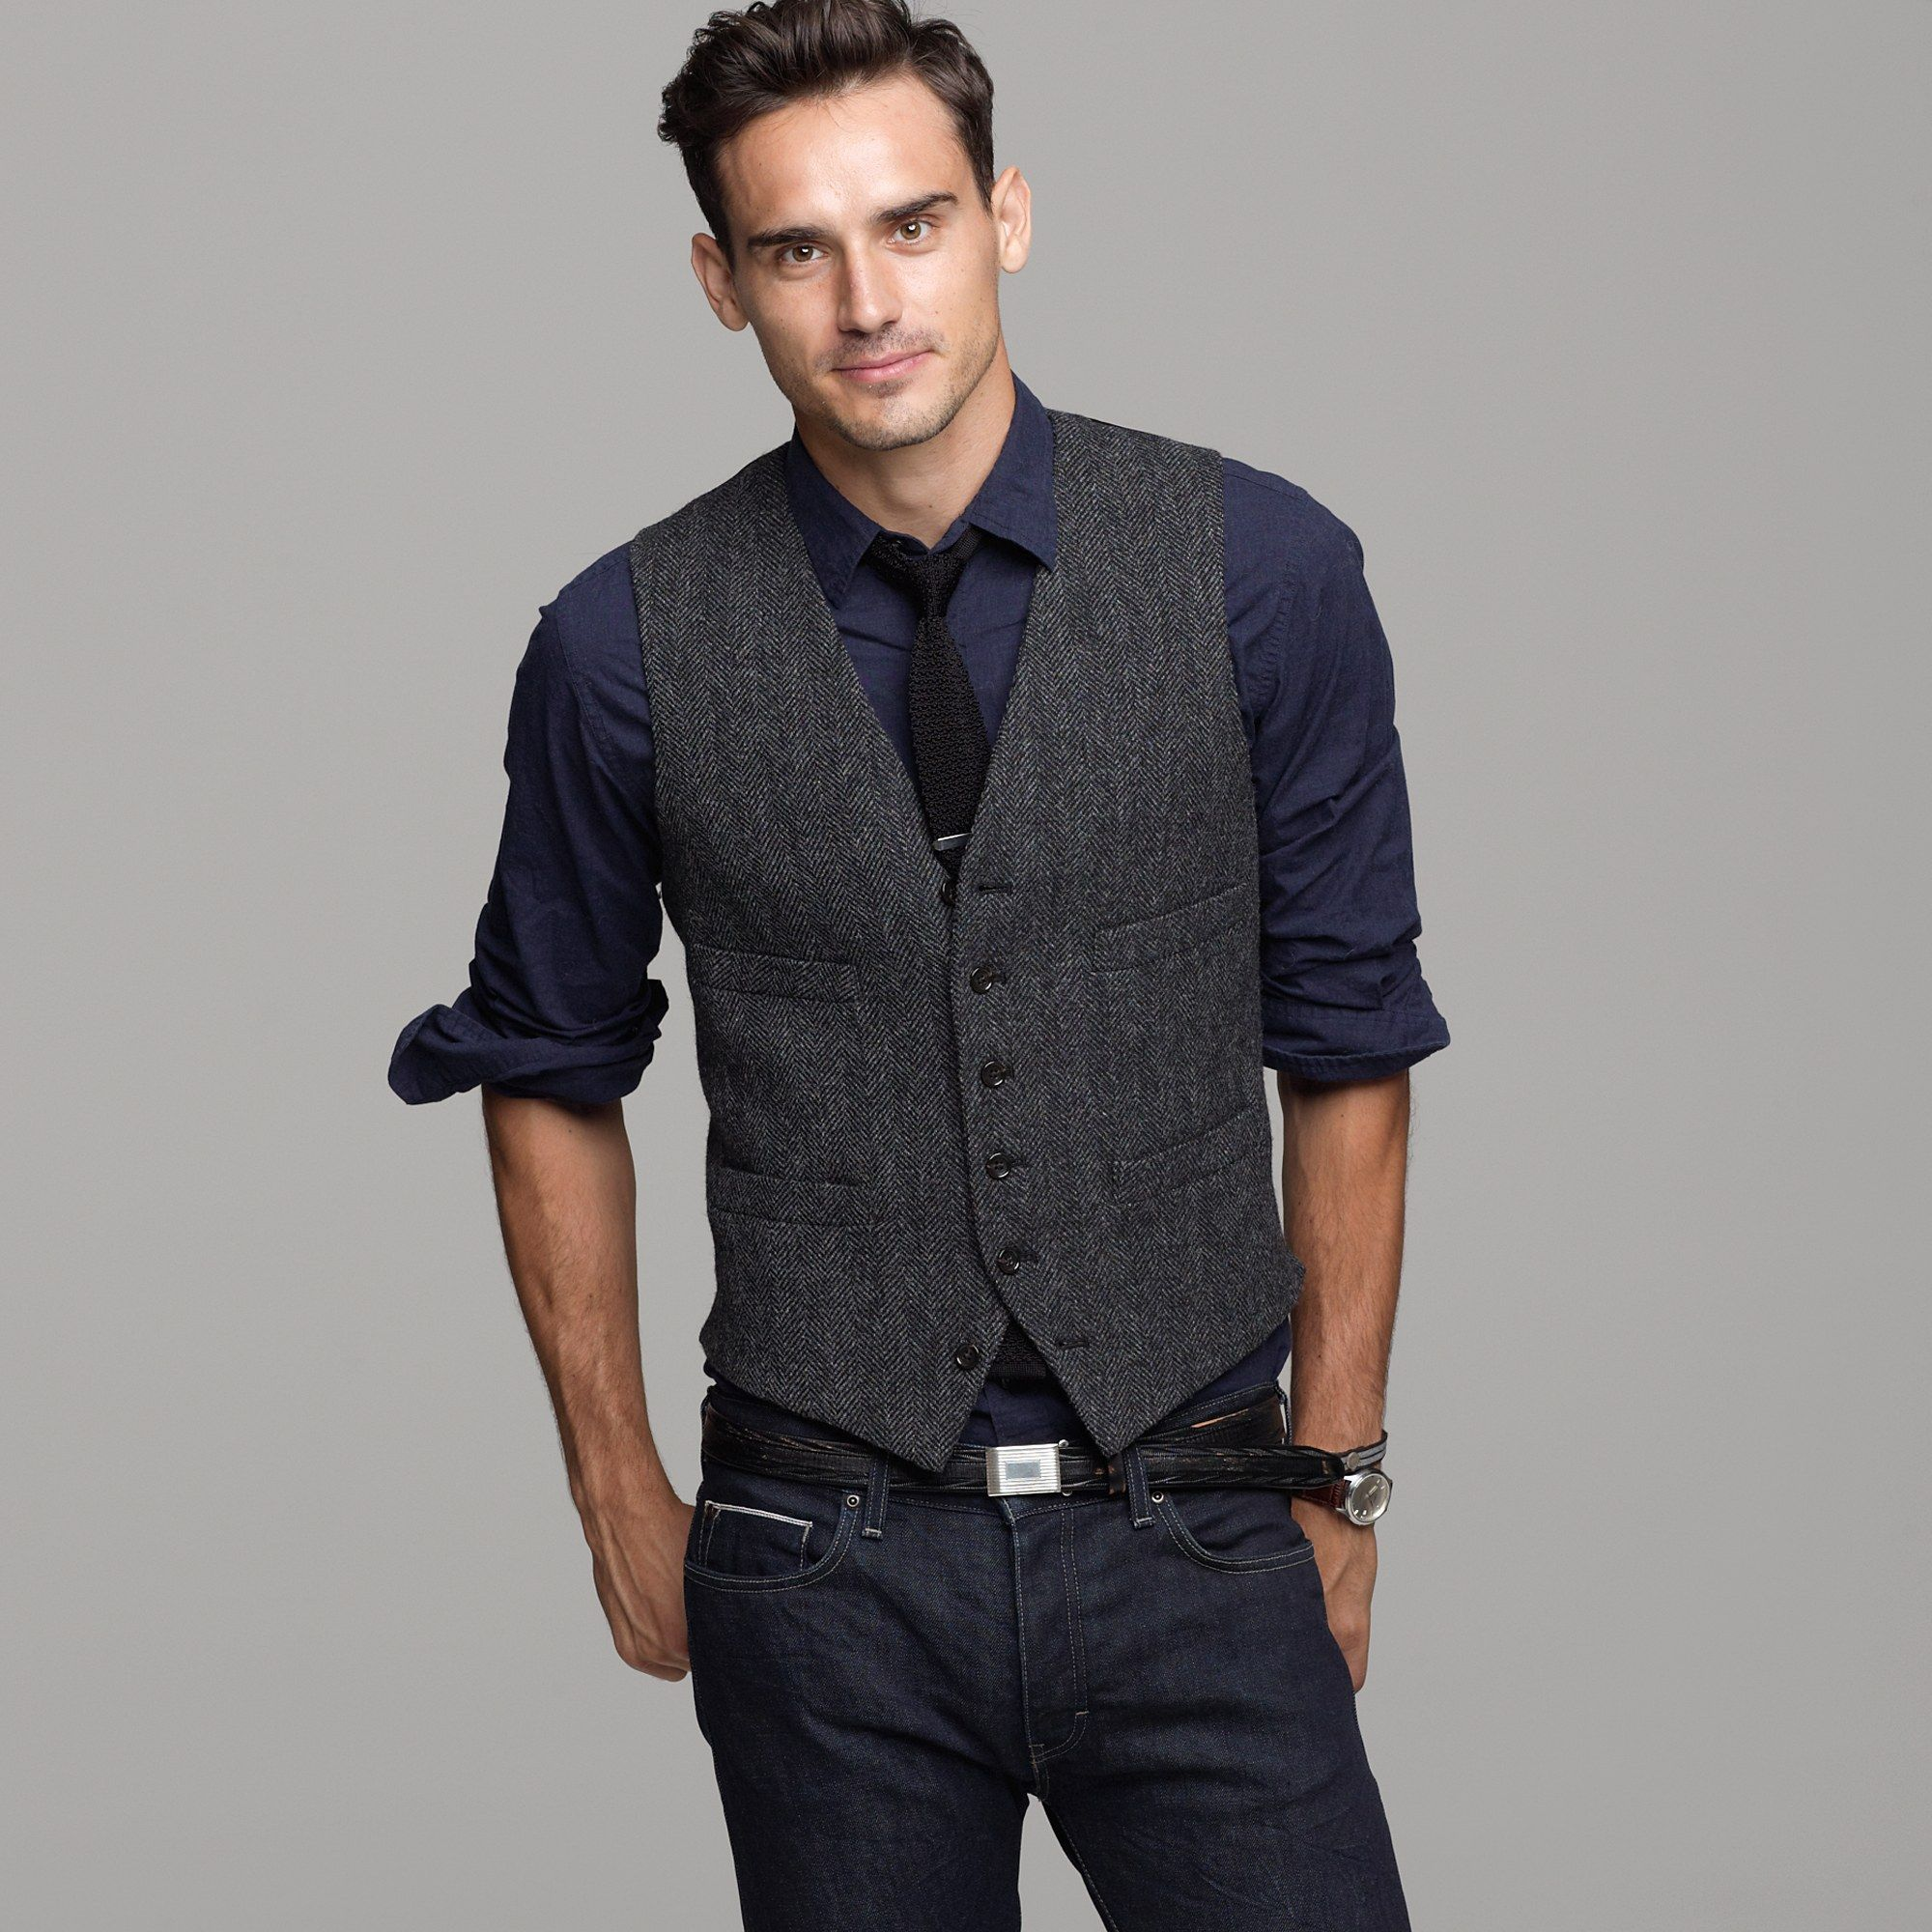 d04b928e8414 J.crew Buckley Herringbone Vest in Gray for Men (charcoal) | Lyst ...